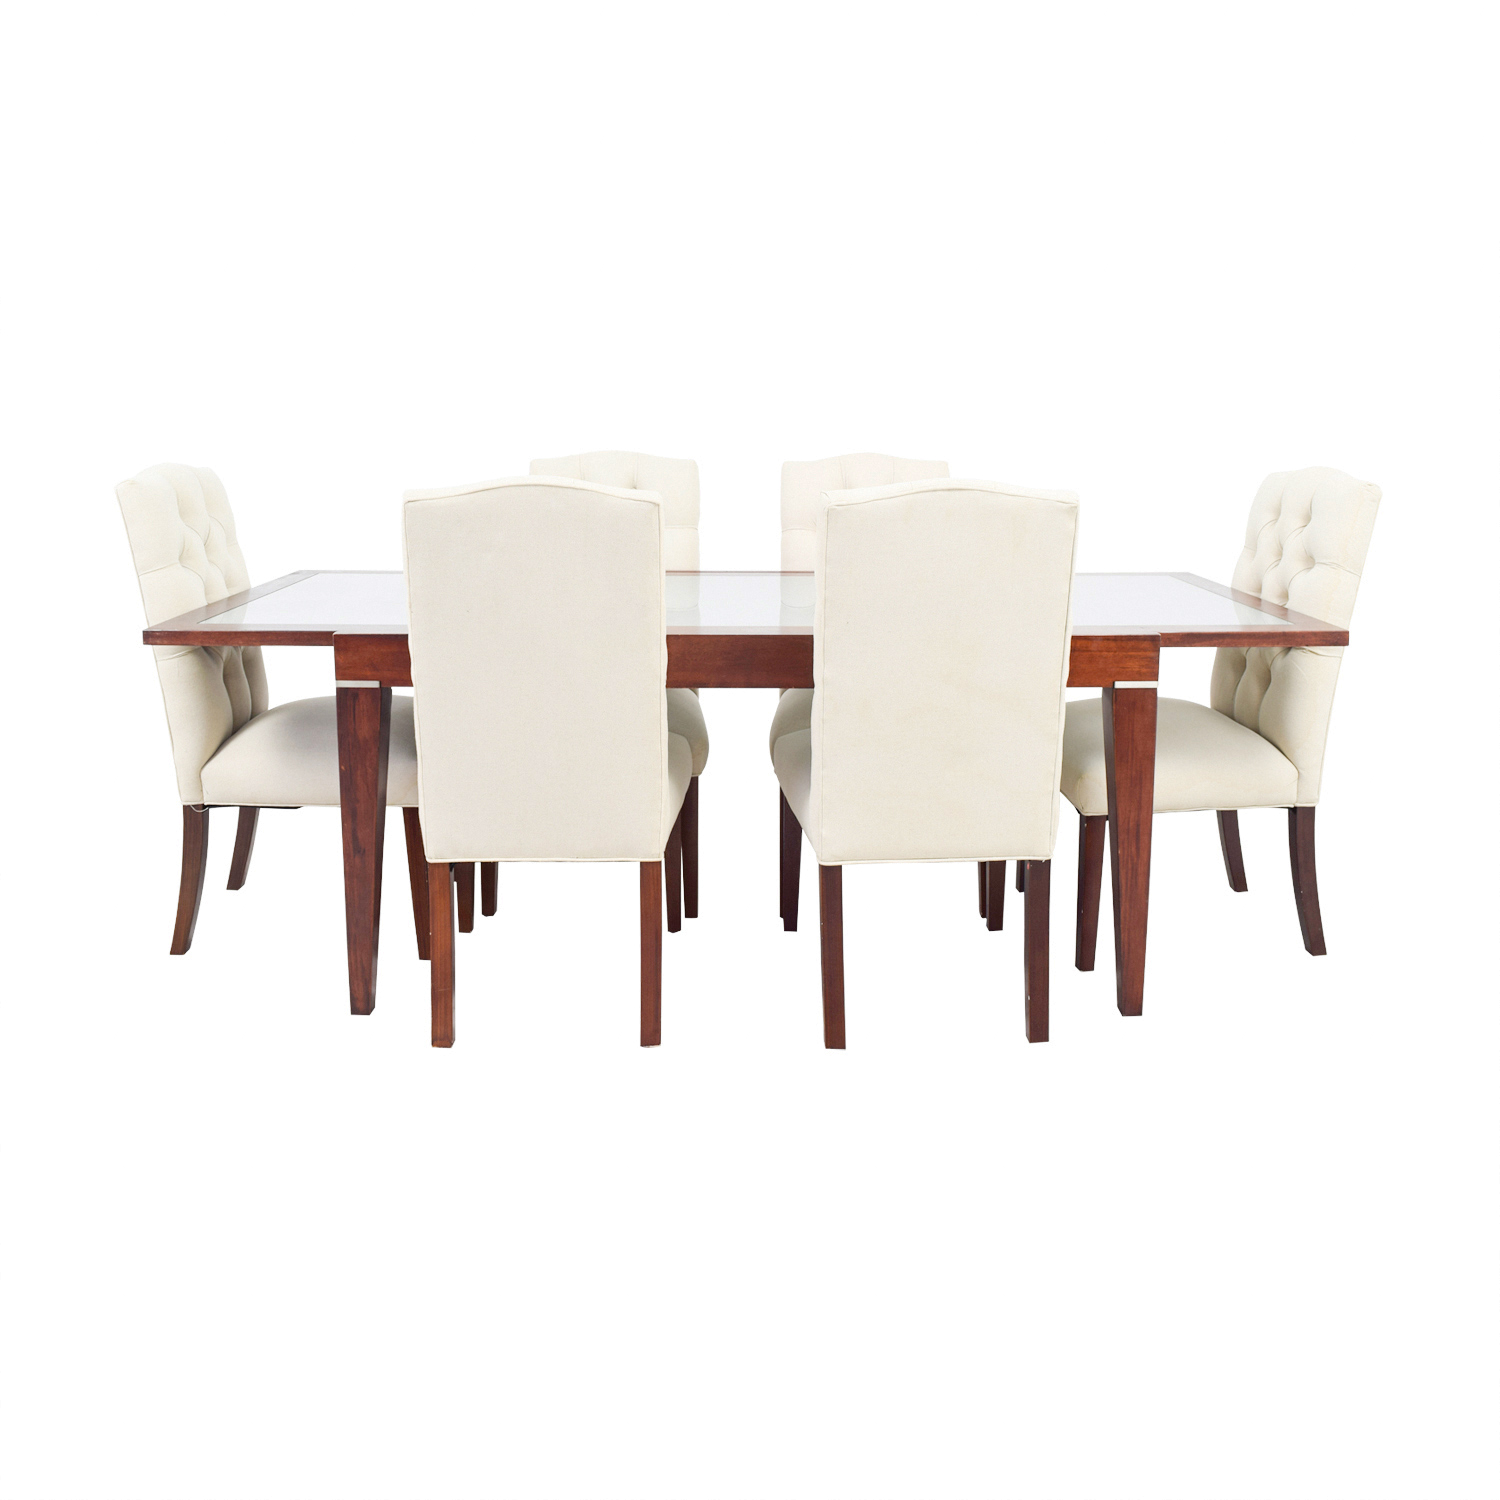 West Elm West Elm Extendable Glass & Wood Dining Set with Upholstered Tufted Chairs nj